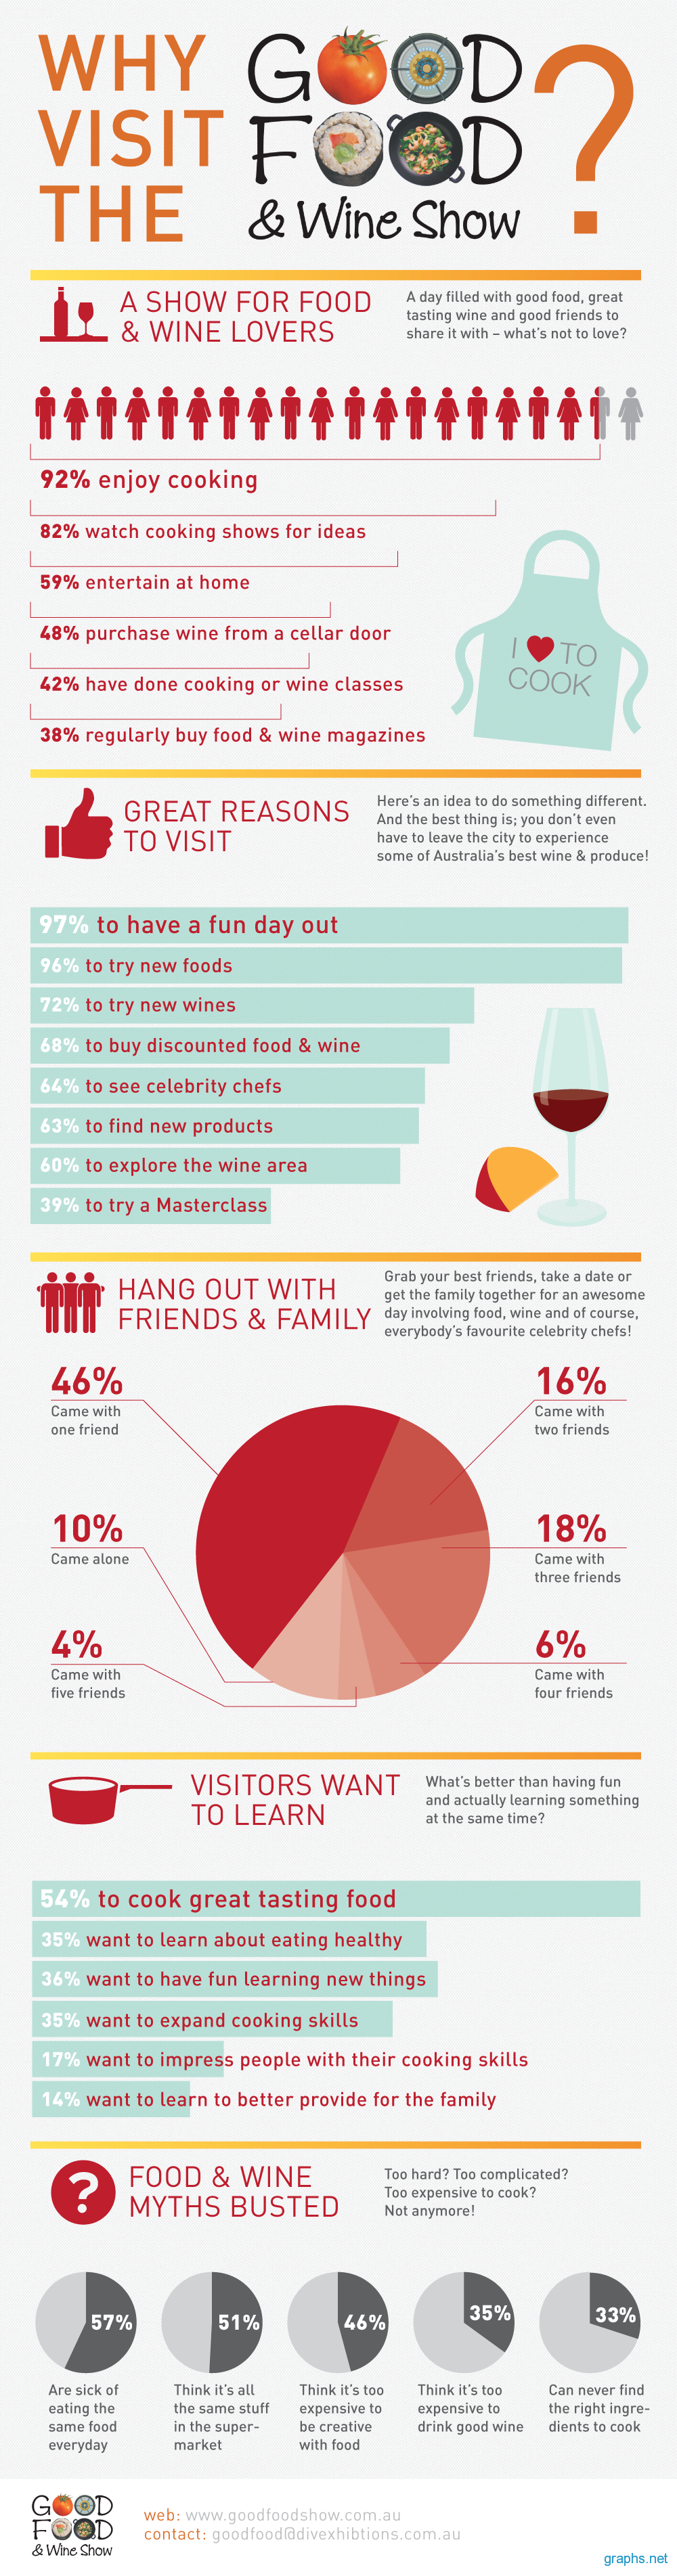 Why People Attend Good Food and Wine Show?